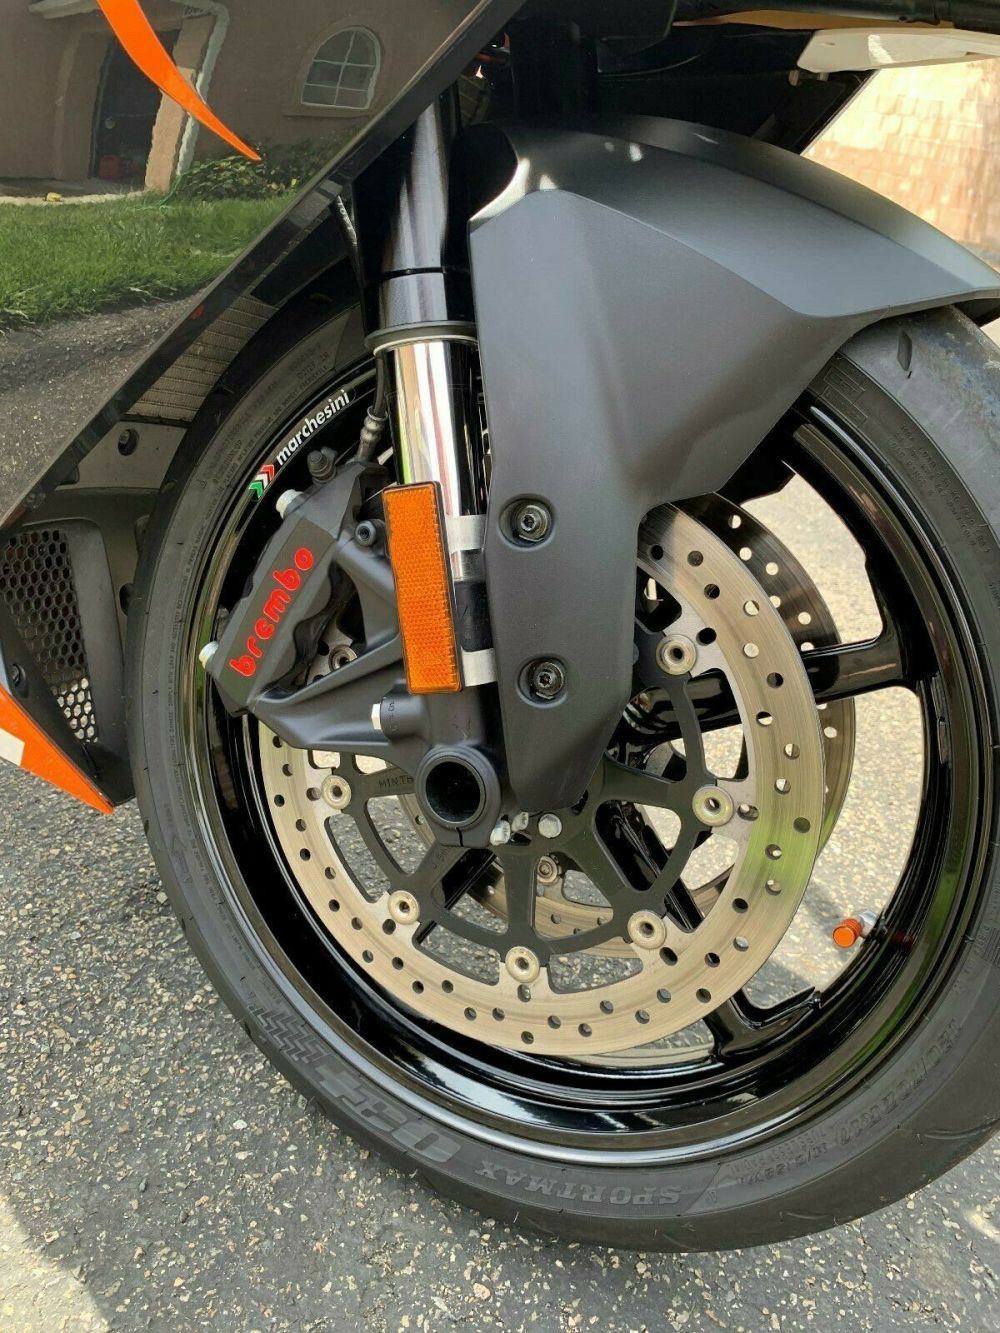 medium resolution of i am the original owner of this 2014 ktm rc8r 1190 i purchased the bike in march of 2014 from thousand oaks the bike runs perfect and looks beautiful